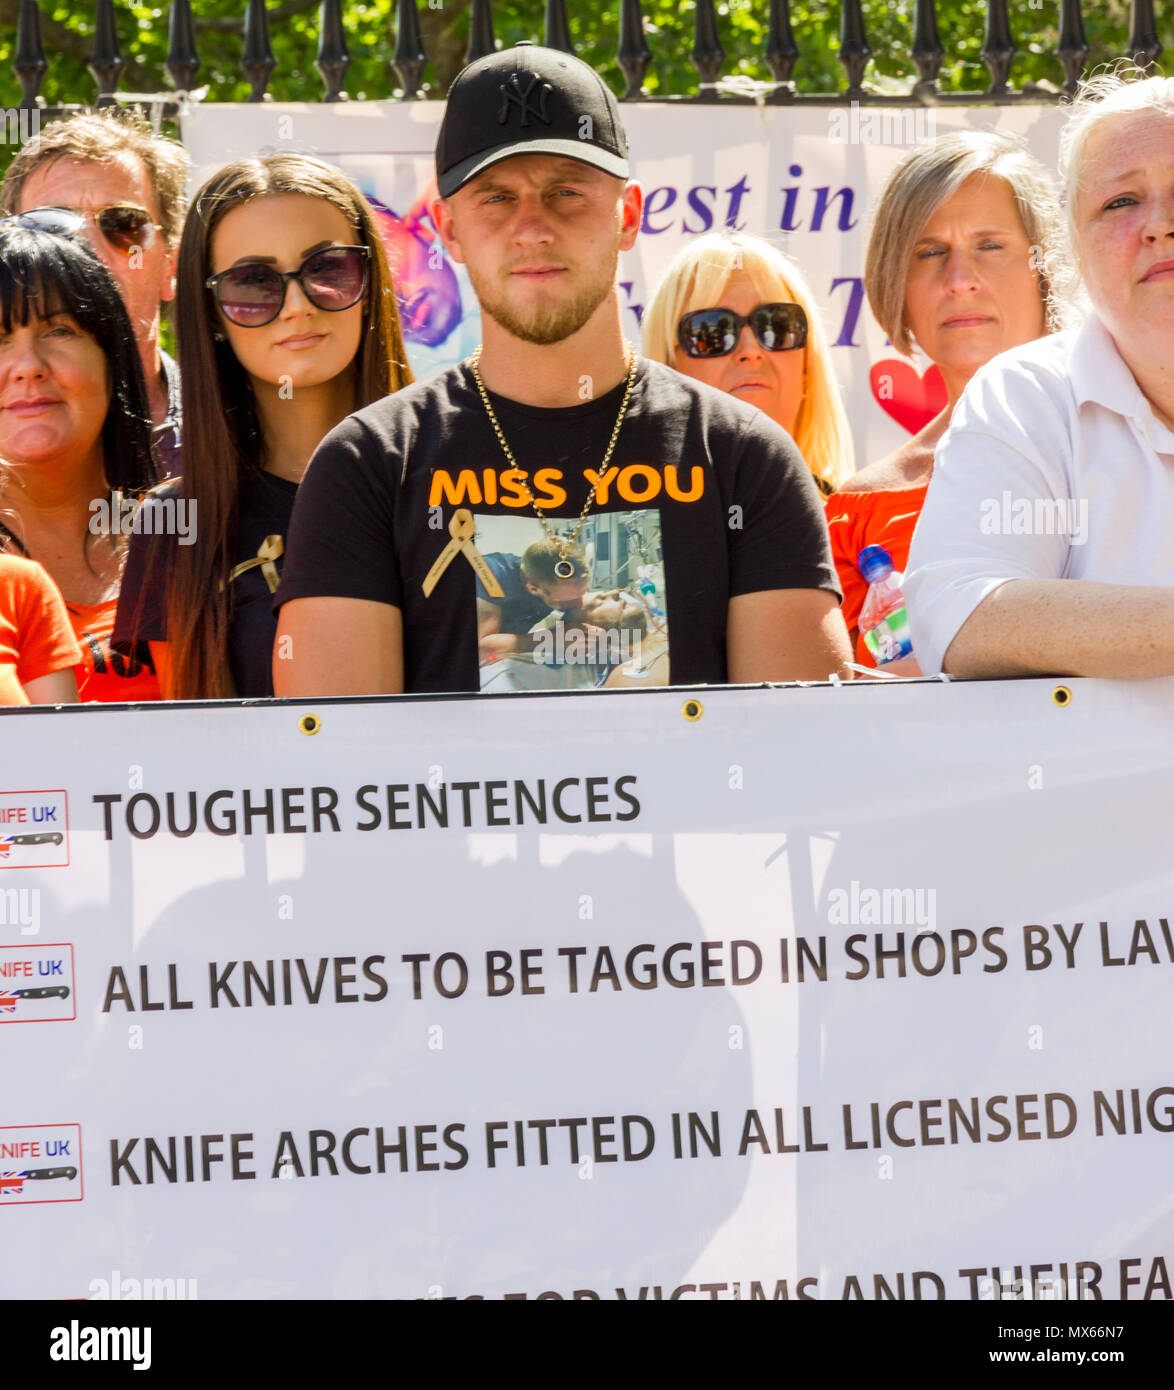 Downing Street, London, UK. 3rd June 2018. This morning, families of knife crime victims, their friends and supporters gather opposite 10 Downing street, prior to presenting The British Prime Minister Theresa May with a petition demanding action to curb the unacceptable levels of Knife Crime in London and across the United Kingdom. Credit: Alan Fraser/Alamy Live News Stock Photo